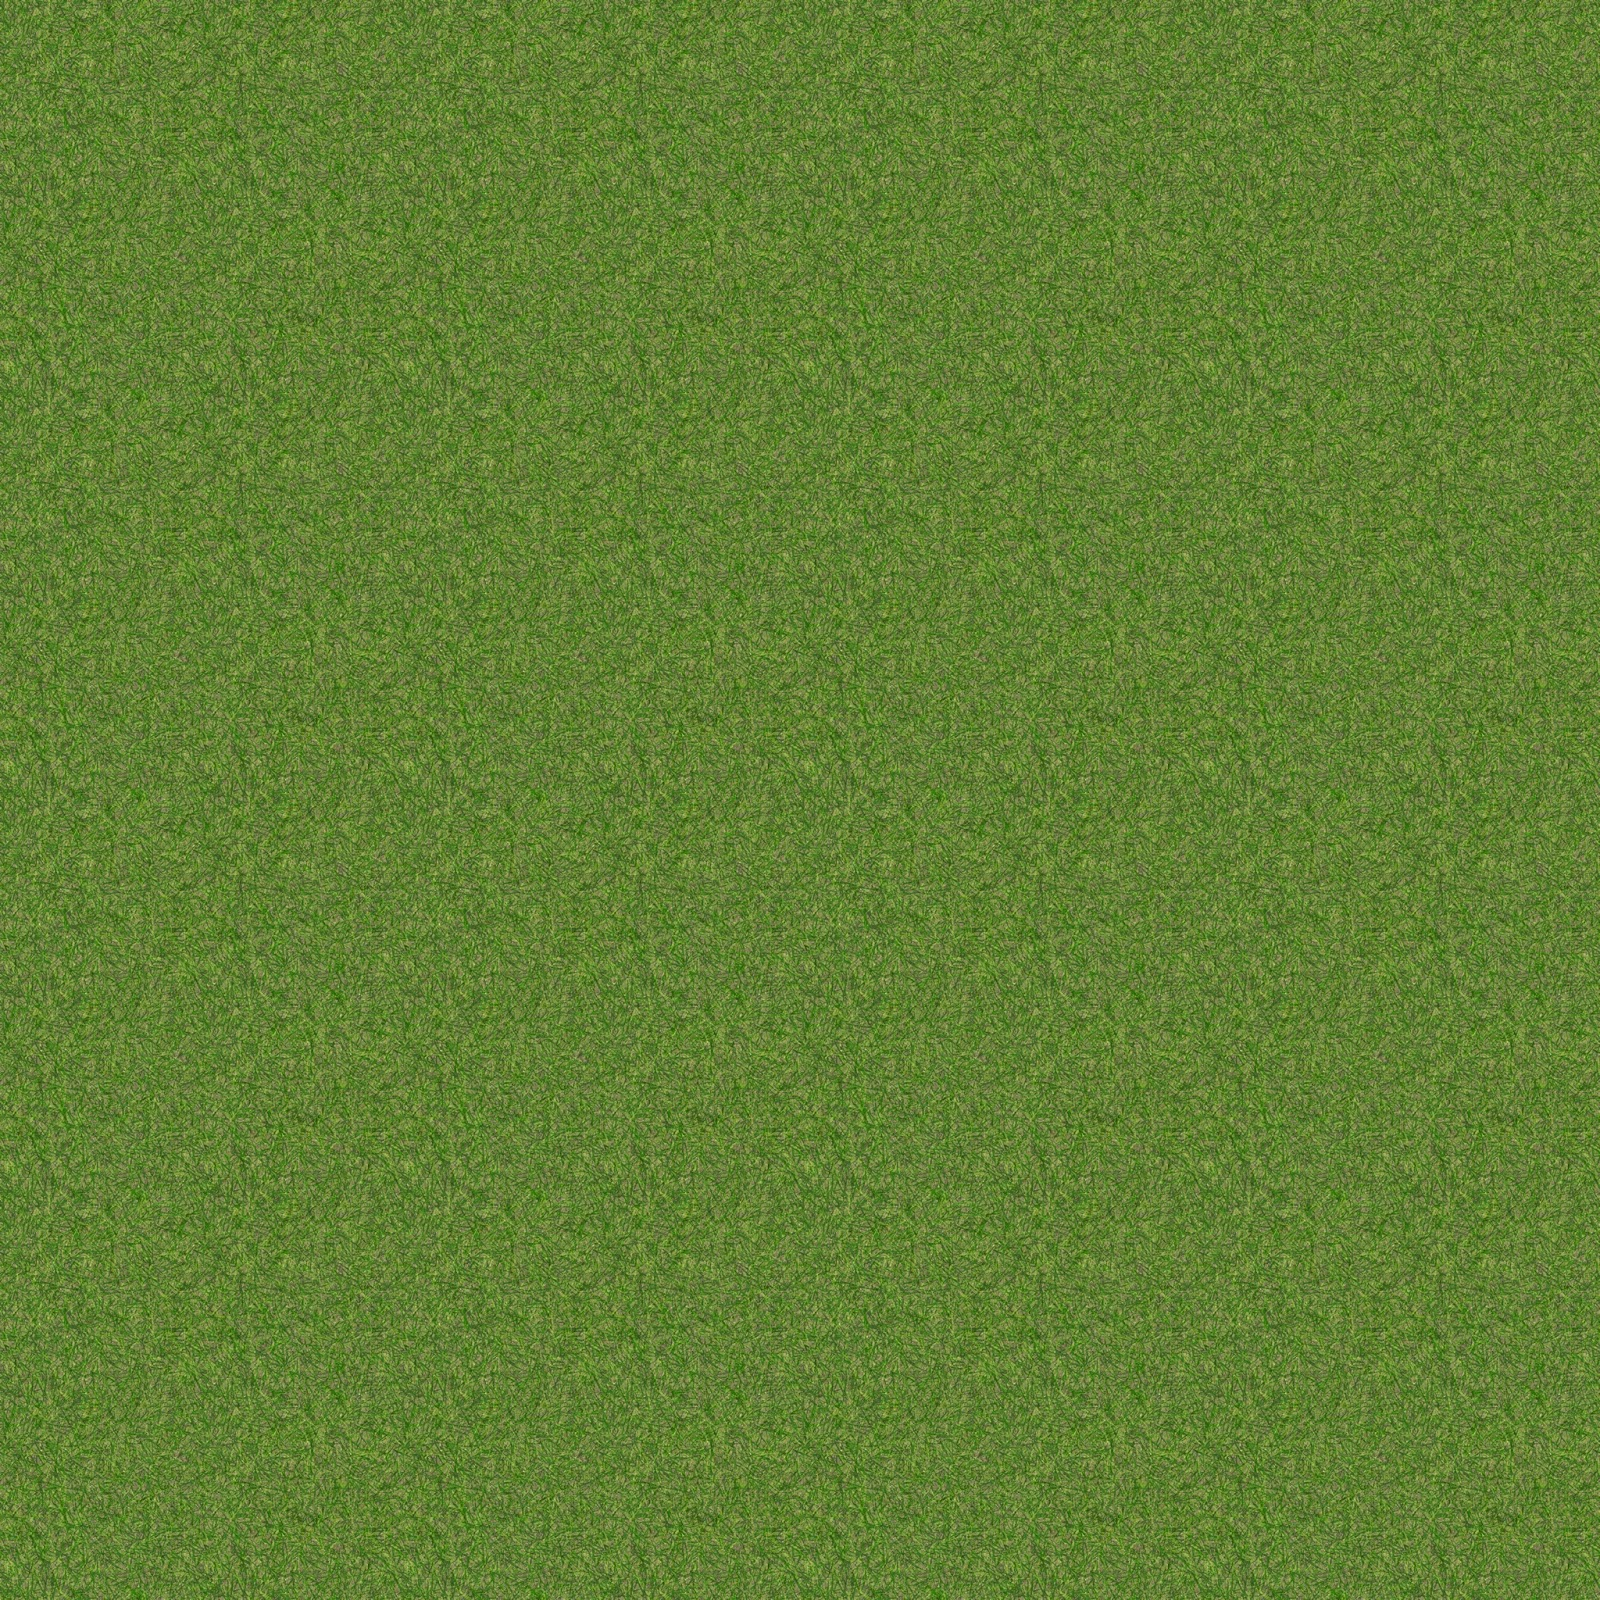 Grass high view seamless texture 2048x2048